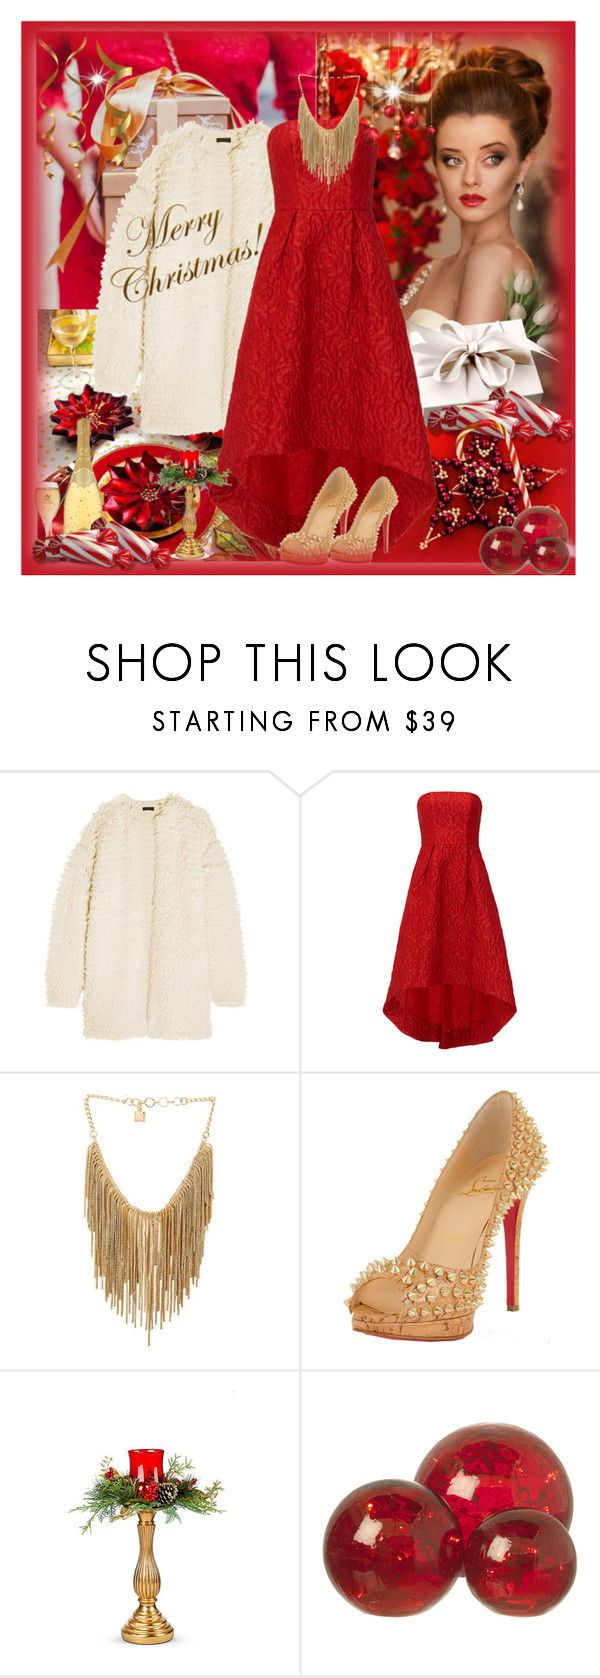 """Candy Cane Christmas"" by sheilafelix ❤ liked on Polyvore featuring J.Crew, ML Monique Lhuillier, BCBGMAXAZRIA, Christian Louboutin, Nuevo, Improvements and Parlane"